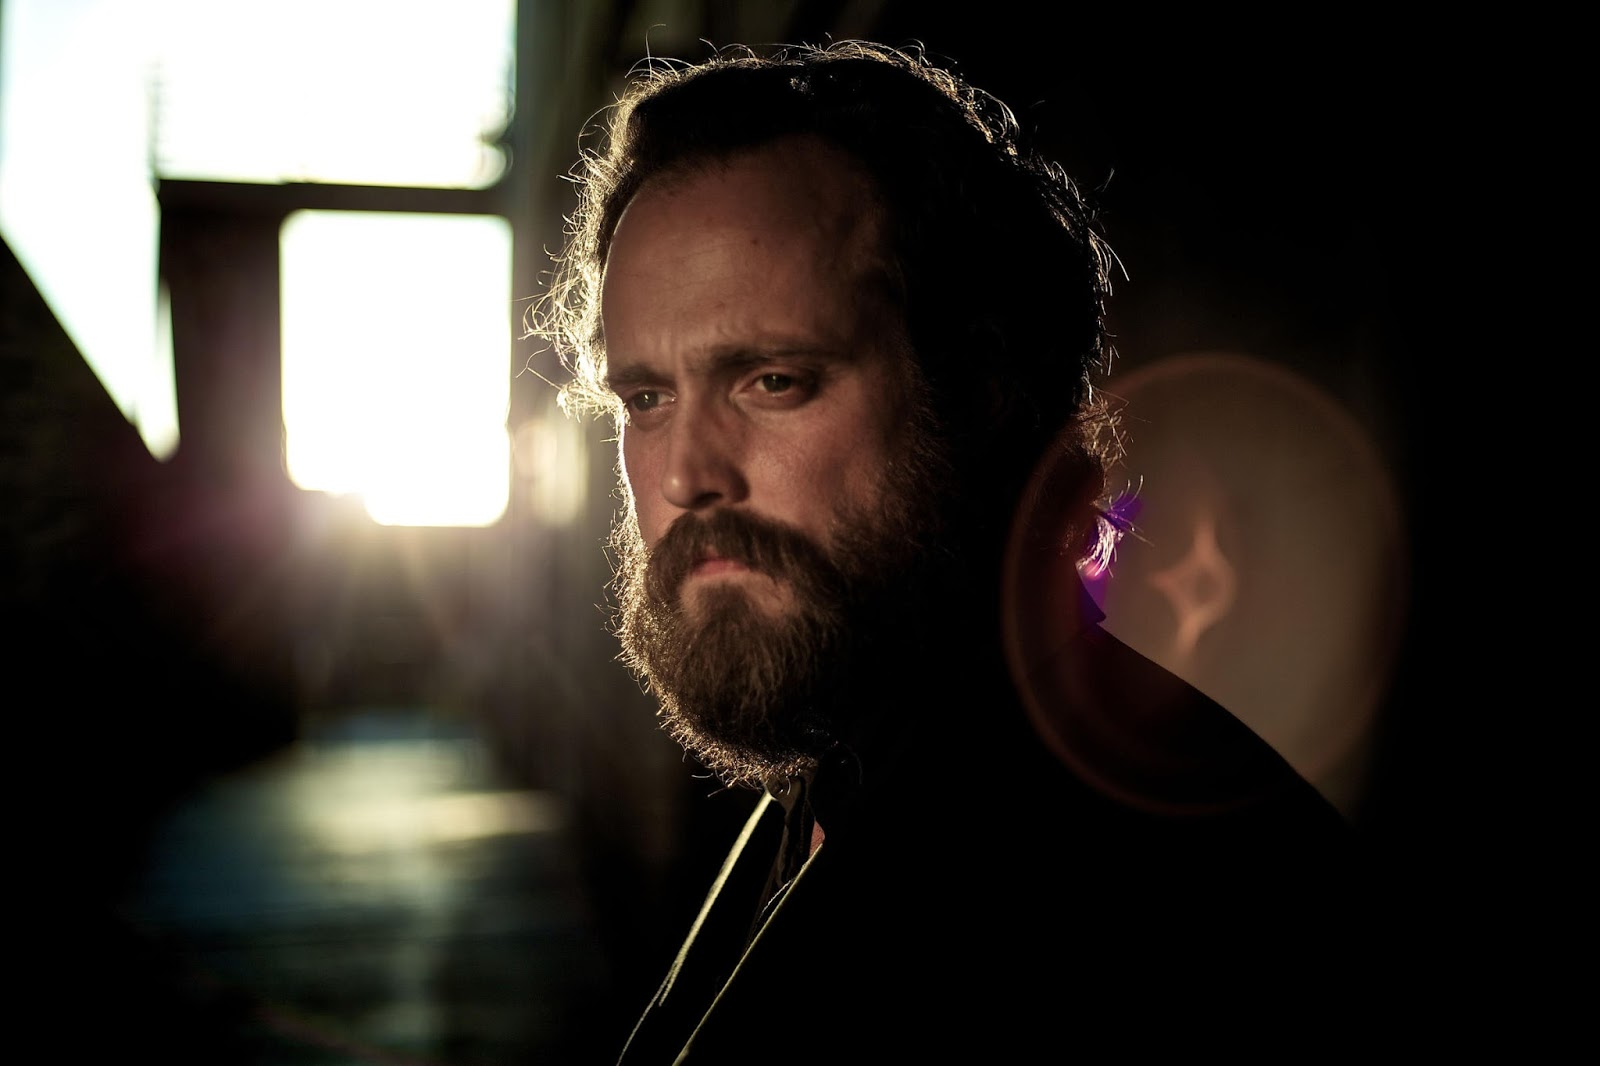 Iron & Wine is performing in Singapore for the first time!